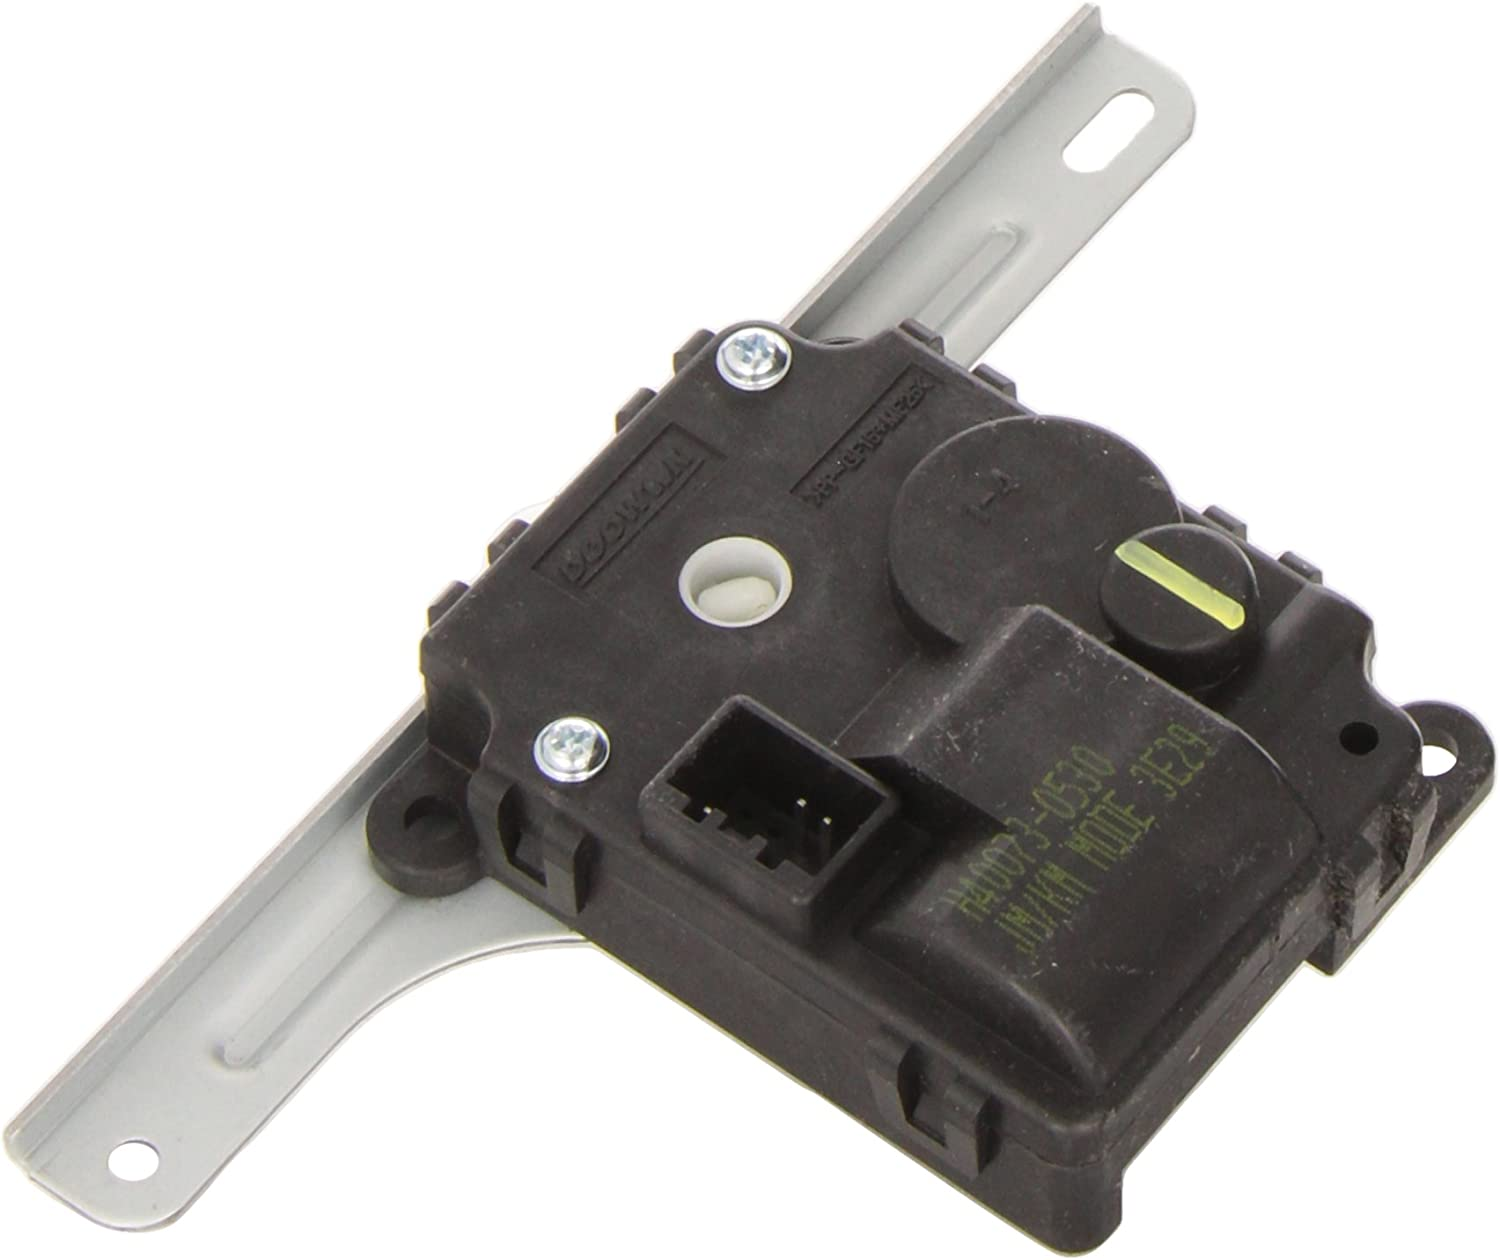 Genuine OEM Kia Sportage Heater Control Mode Actuator 97154-1F200 2009-2010